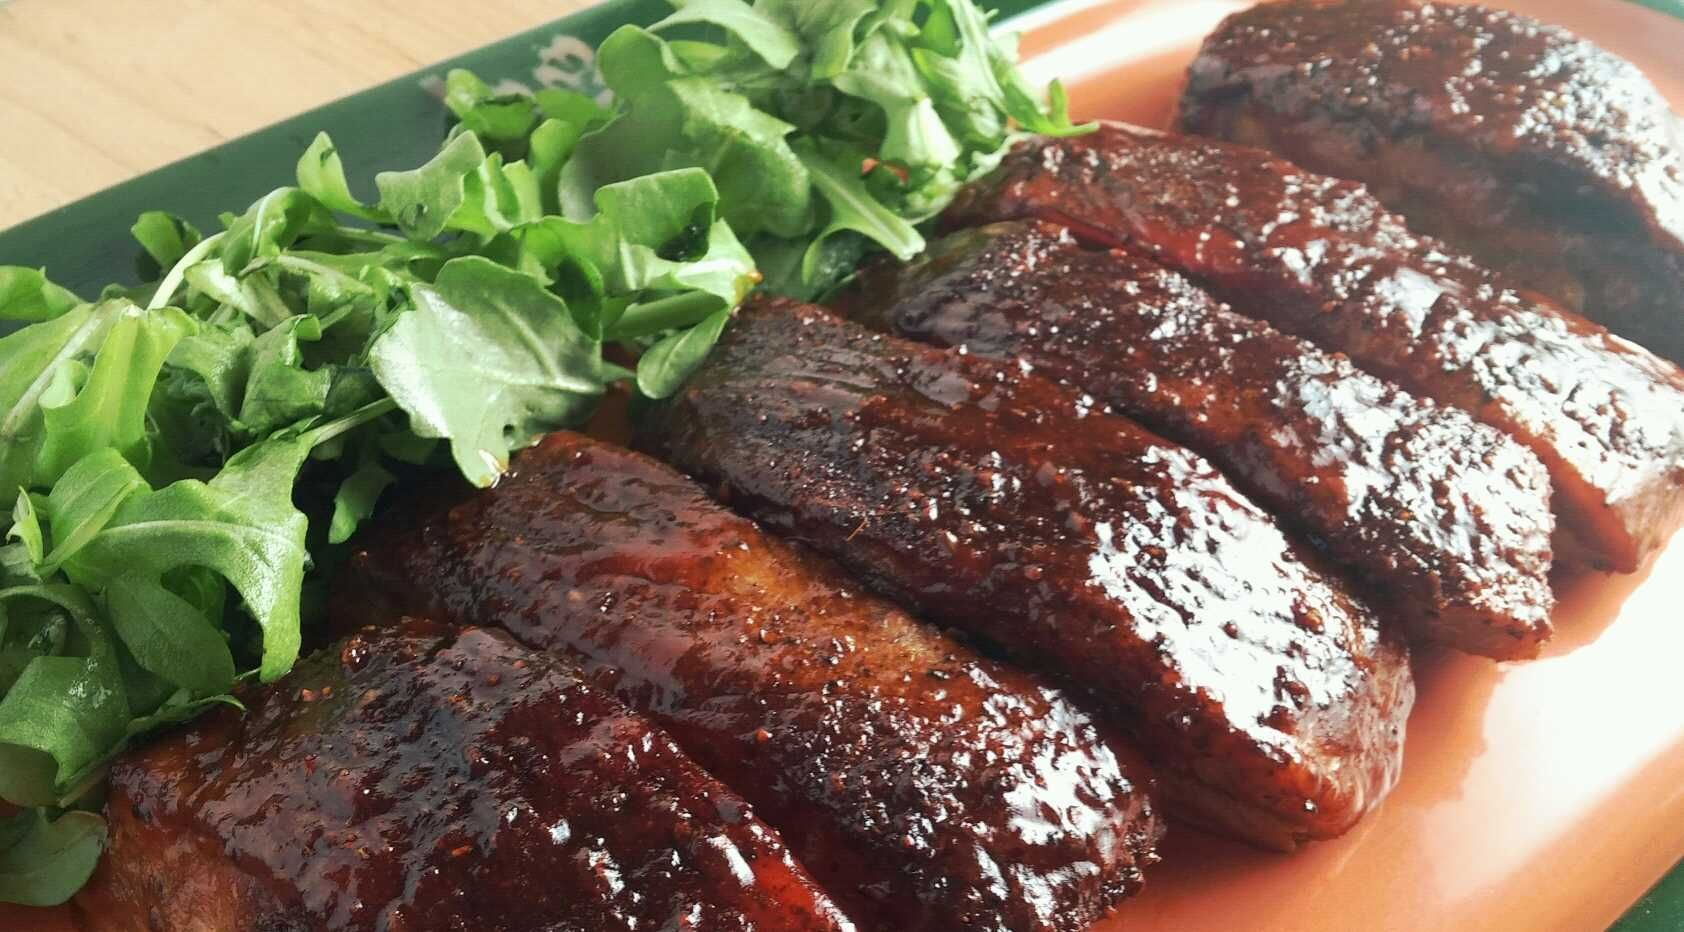 Bbq Ribs Pork Smoking Meat Recipes Use Cherry E Wood And A Digital Electric Smoker For Lot Of Flavor